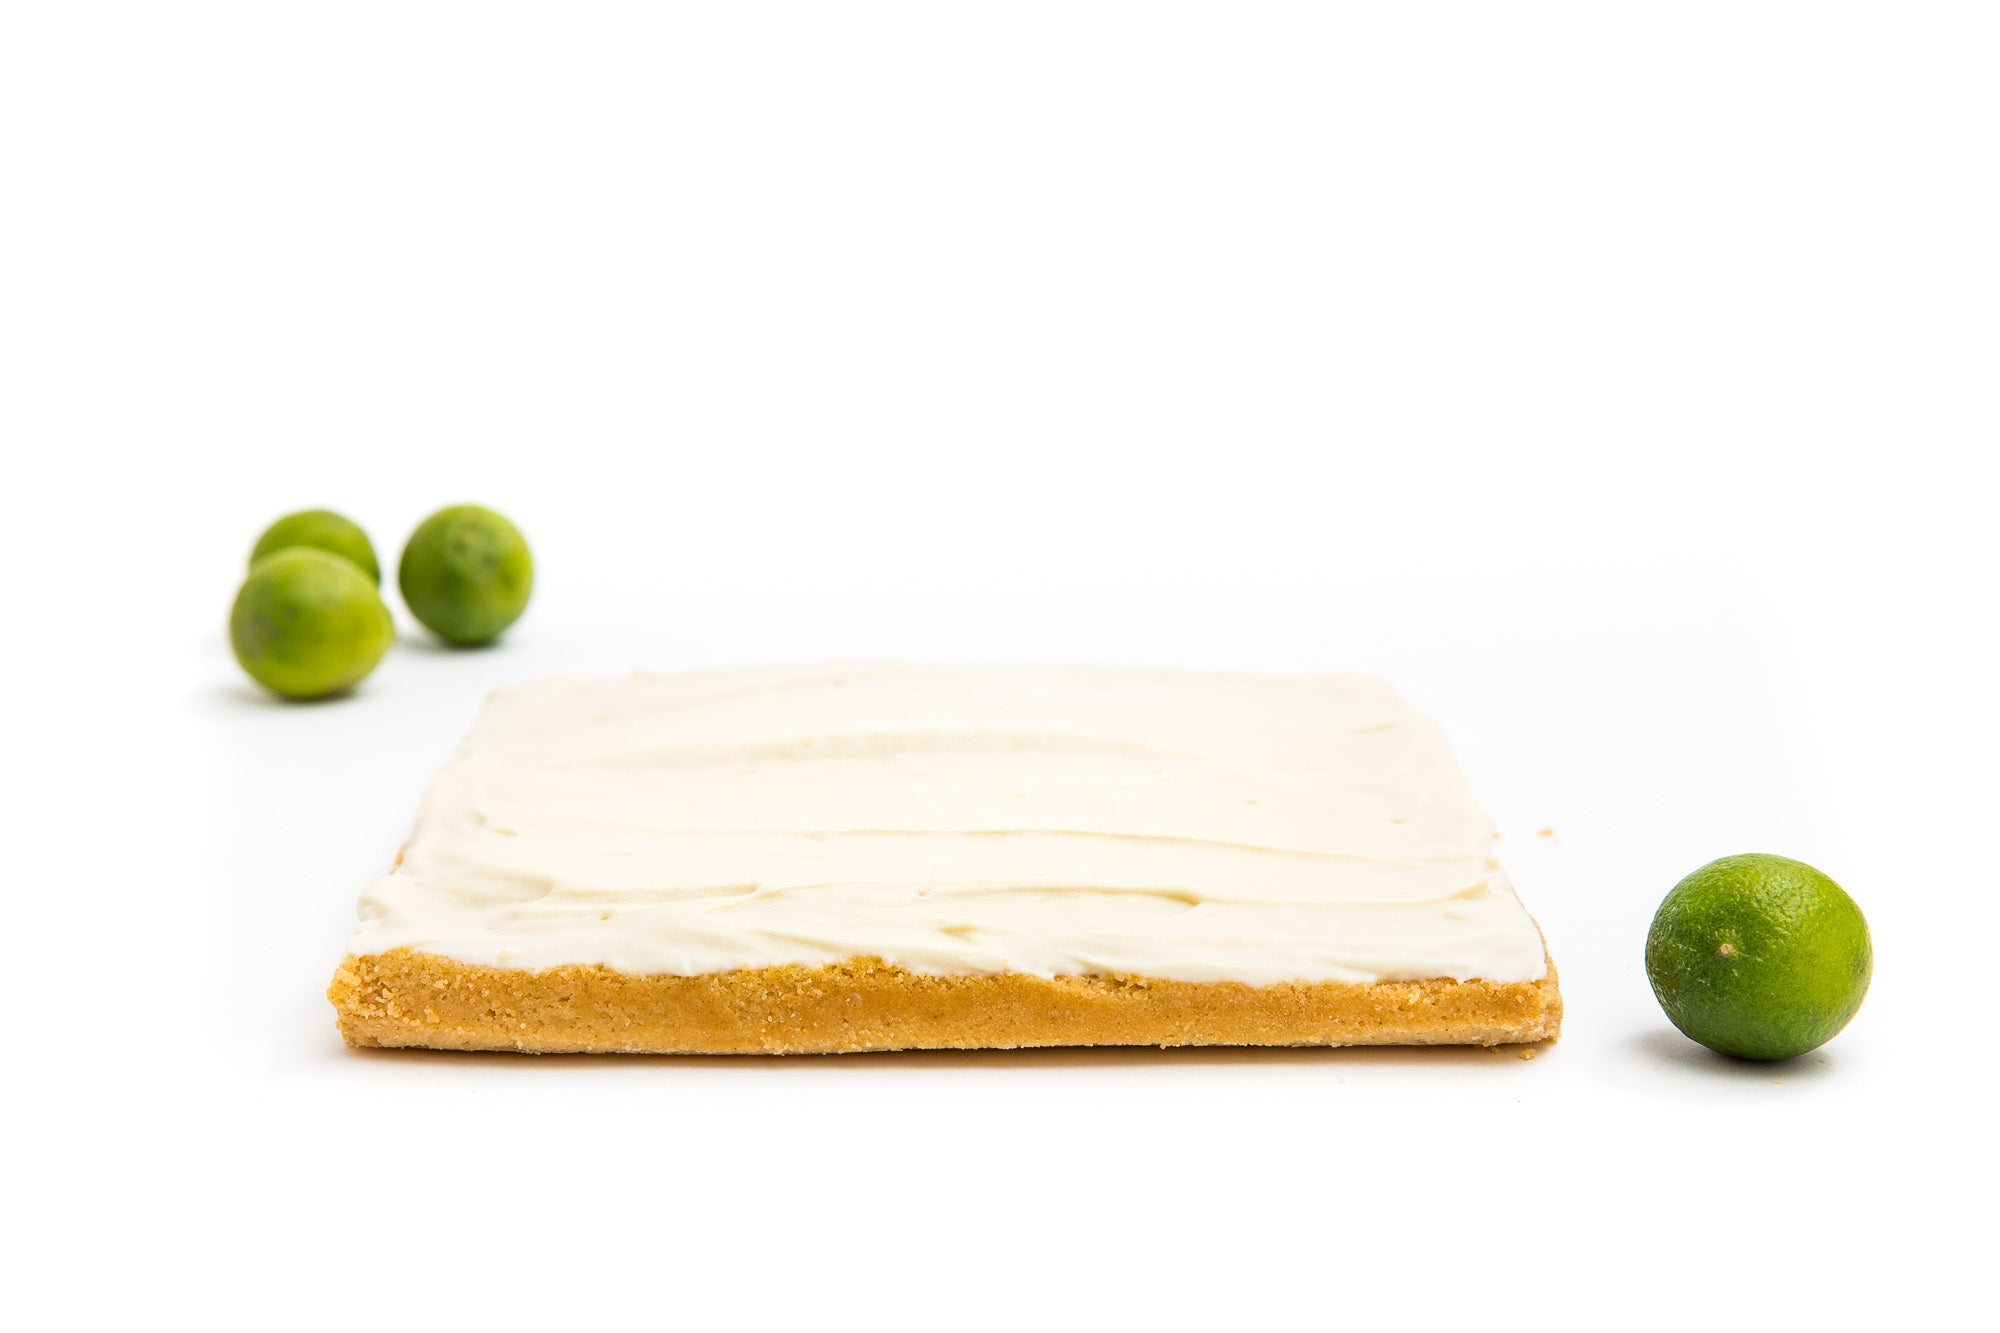 Image of Miss Jones Baking Co Key Lime Margarita Bars with four limes around it